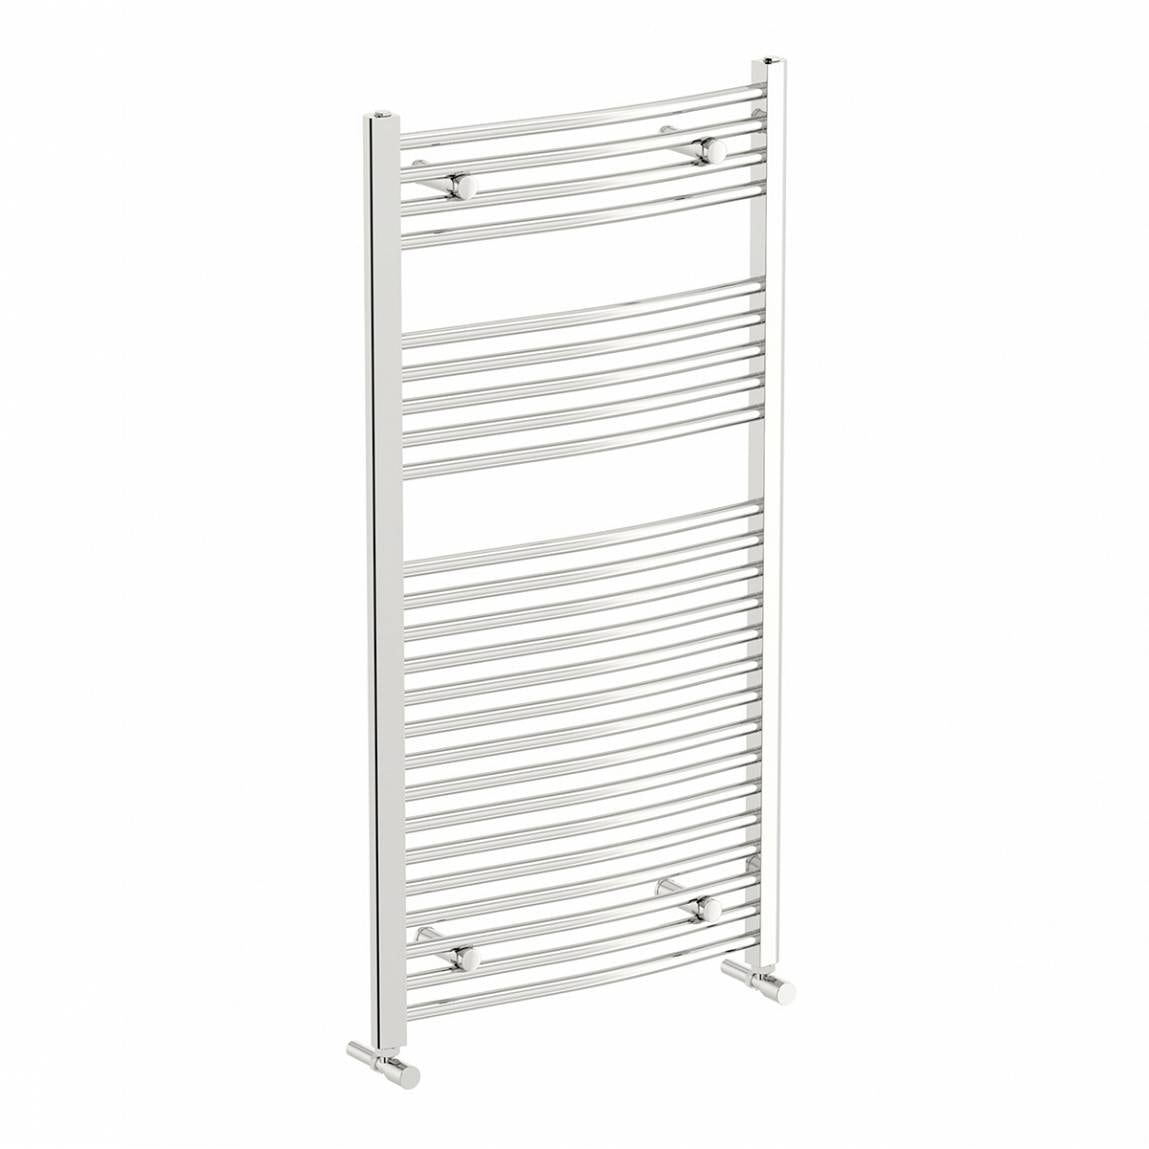 Orchard Elsdon heated towel rail 1150 x 600